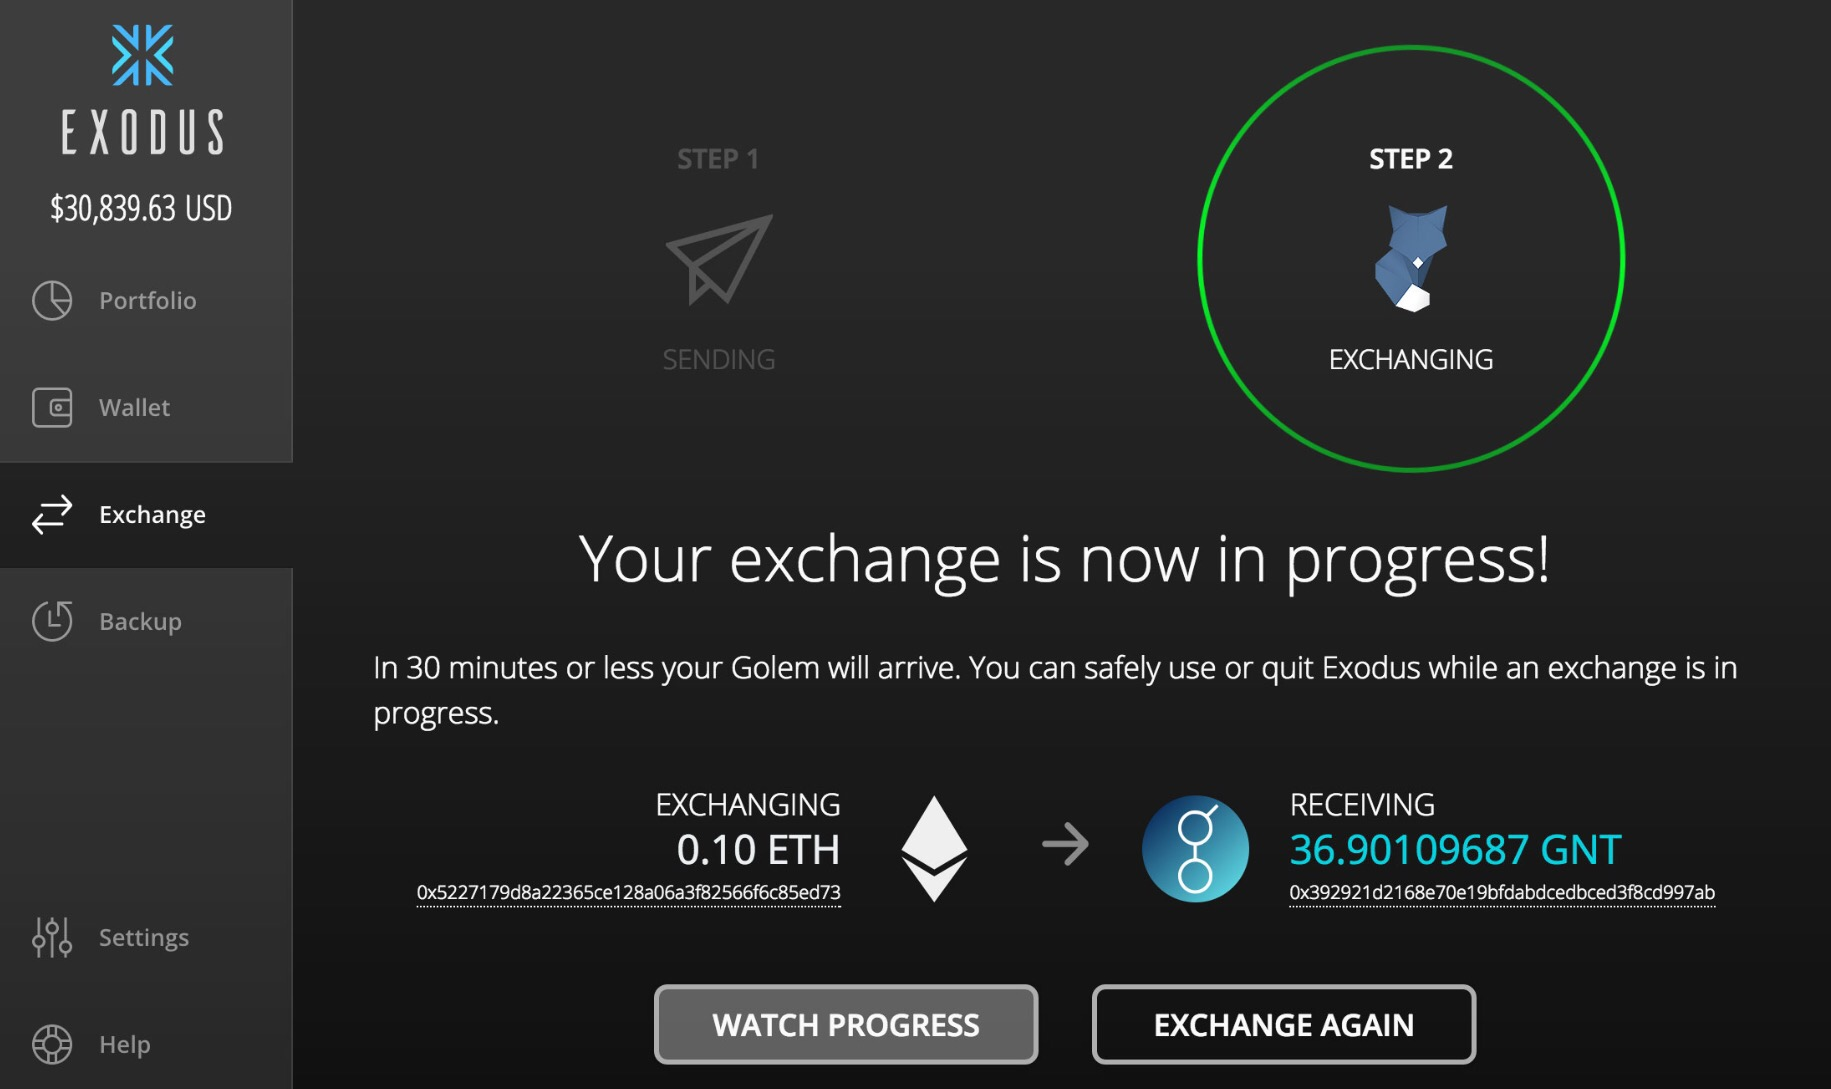 easyest way to buy and shape shift cryptocurrency using fiat